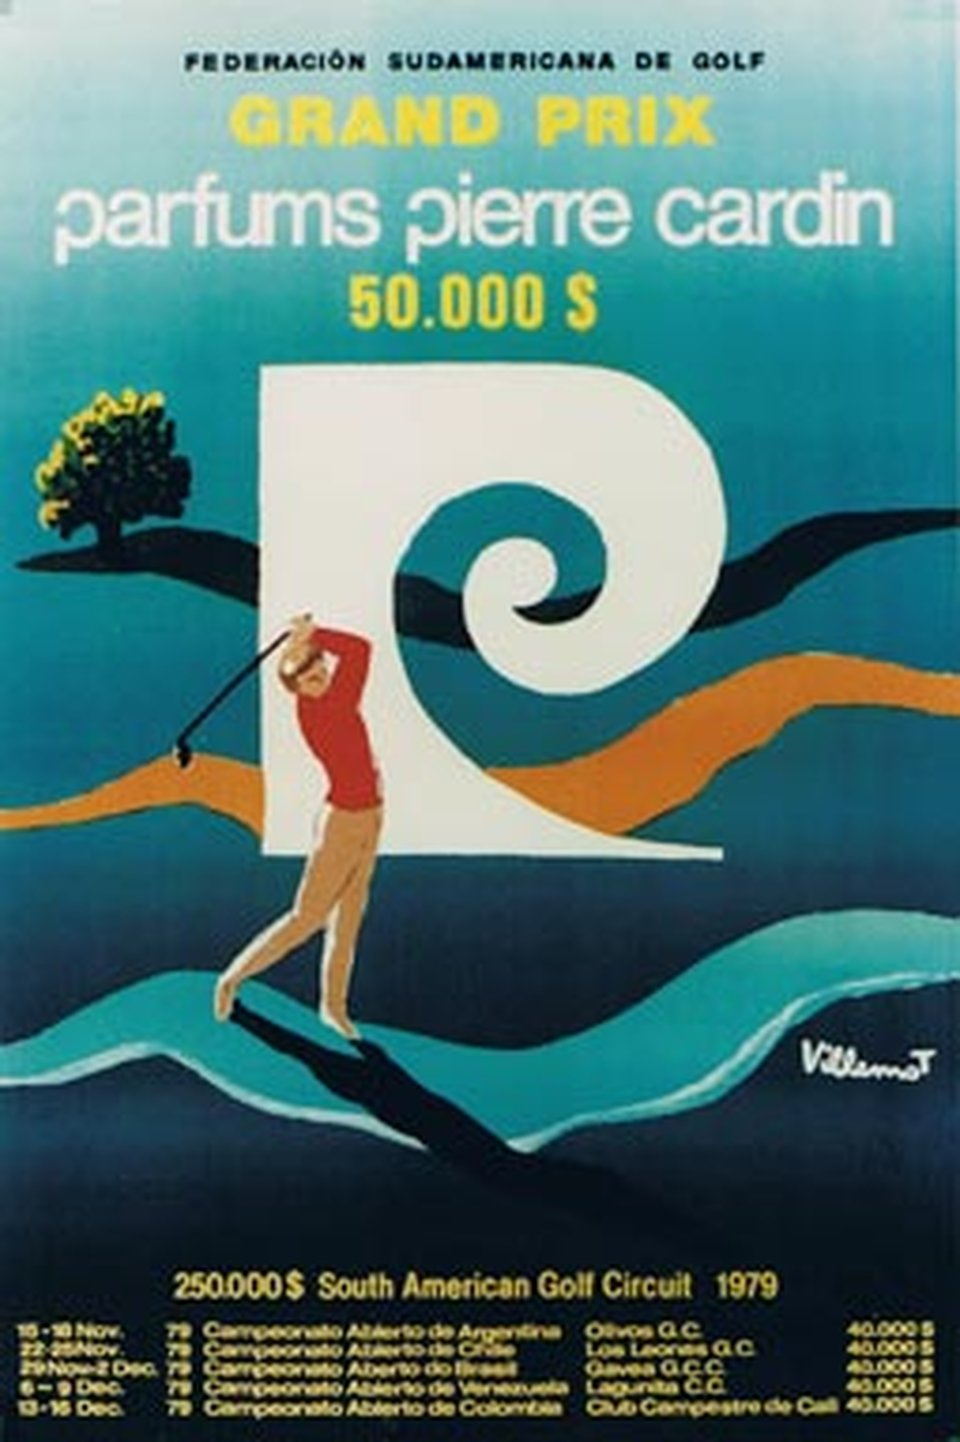 South American Golf Circuit, Grand prix Pierre Cardin – Affiche ancienne – Bernard VILLEMOT – 1979